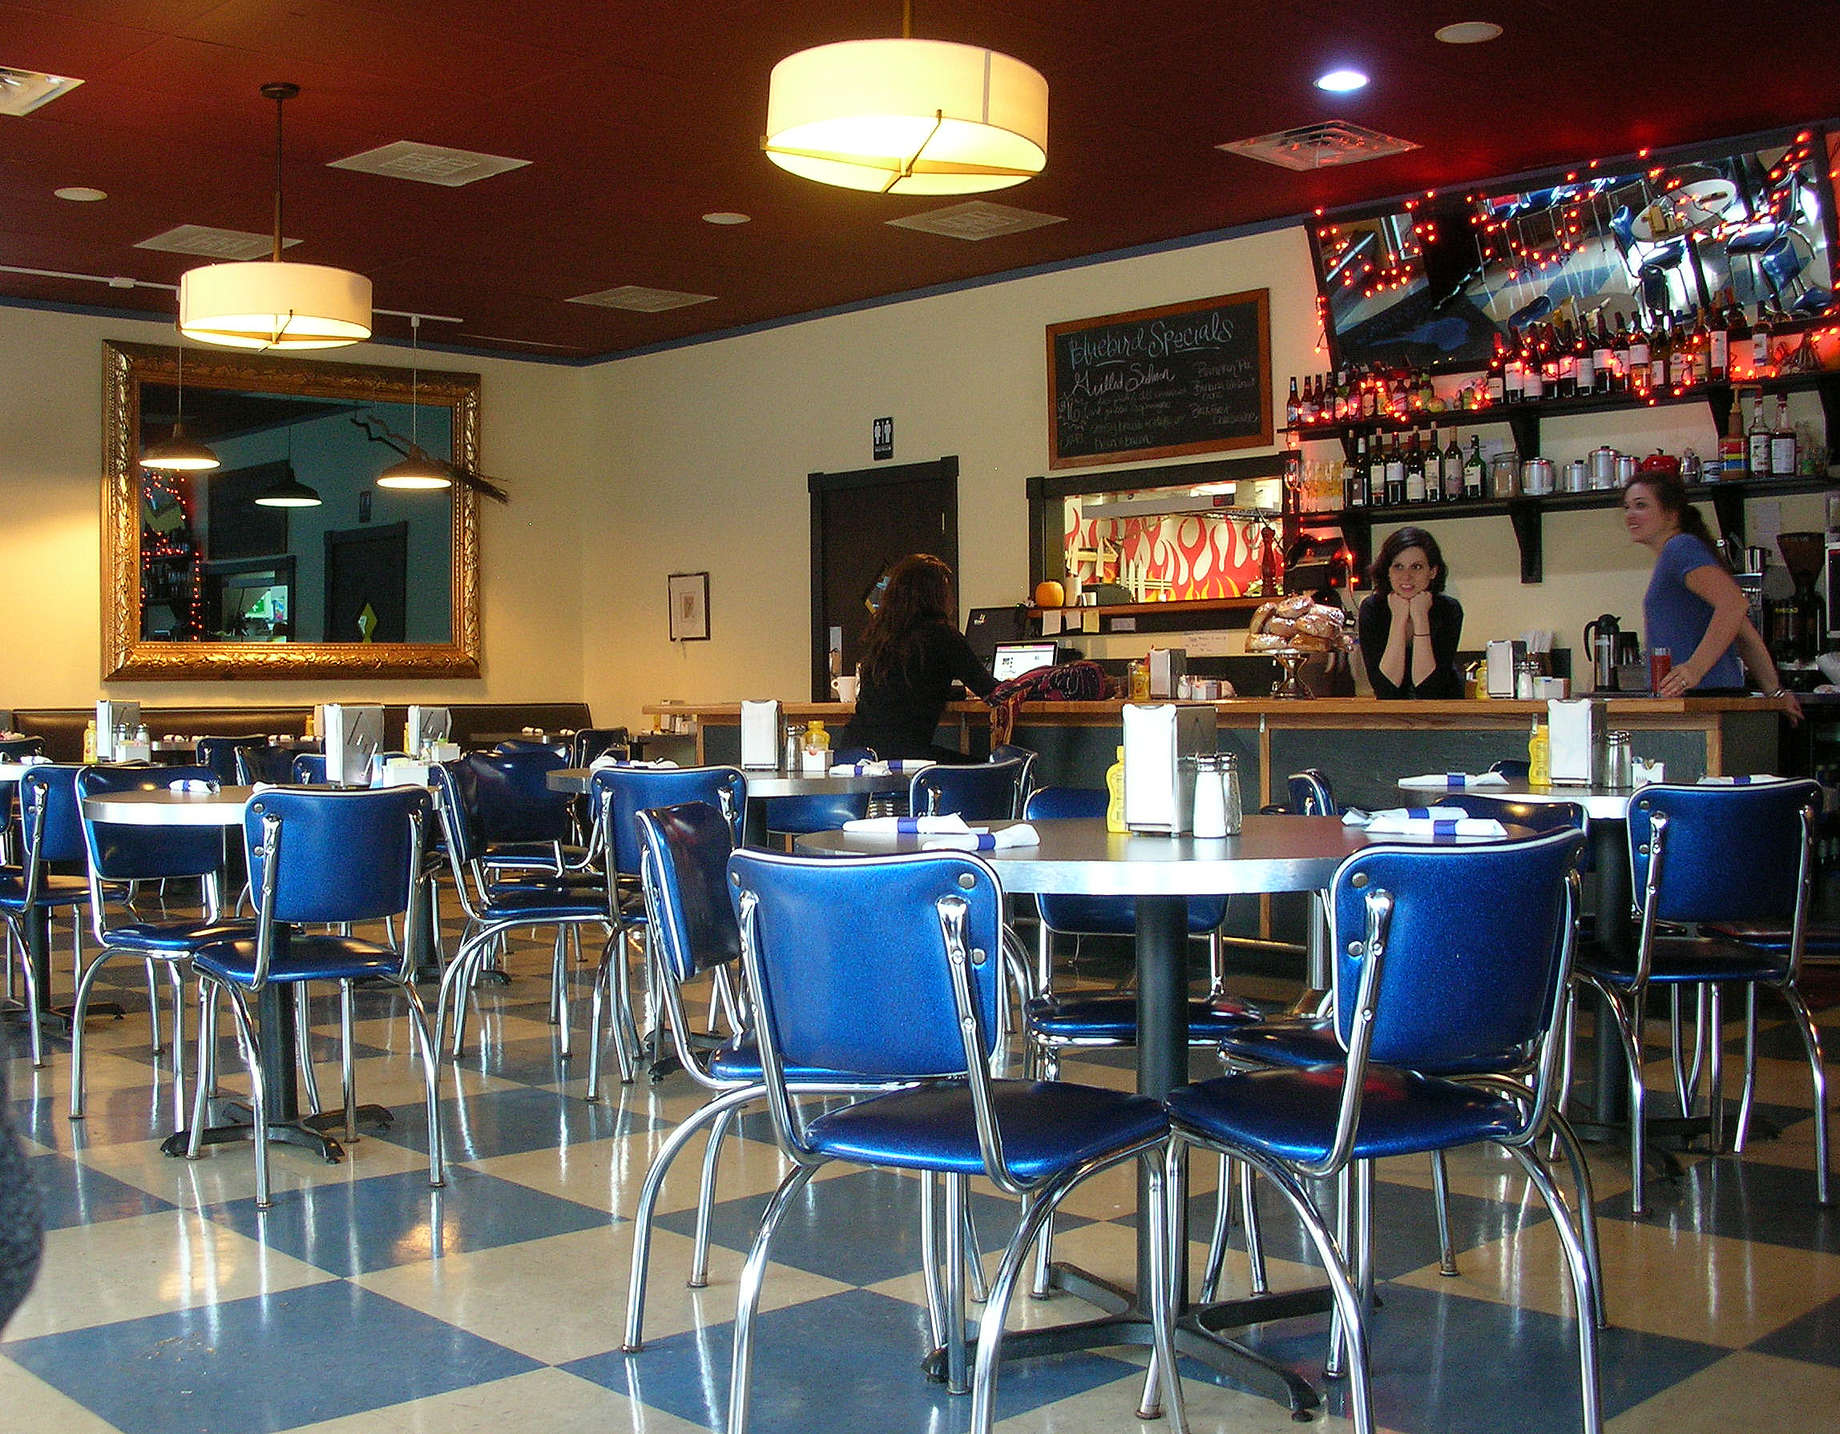 Best Diners in America: Classic Old School Diners to Visit